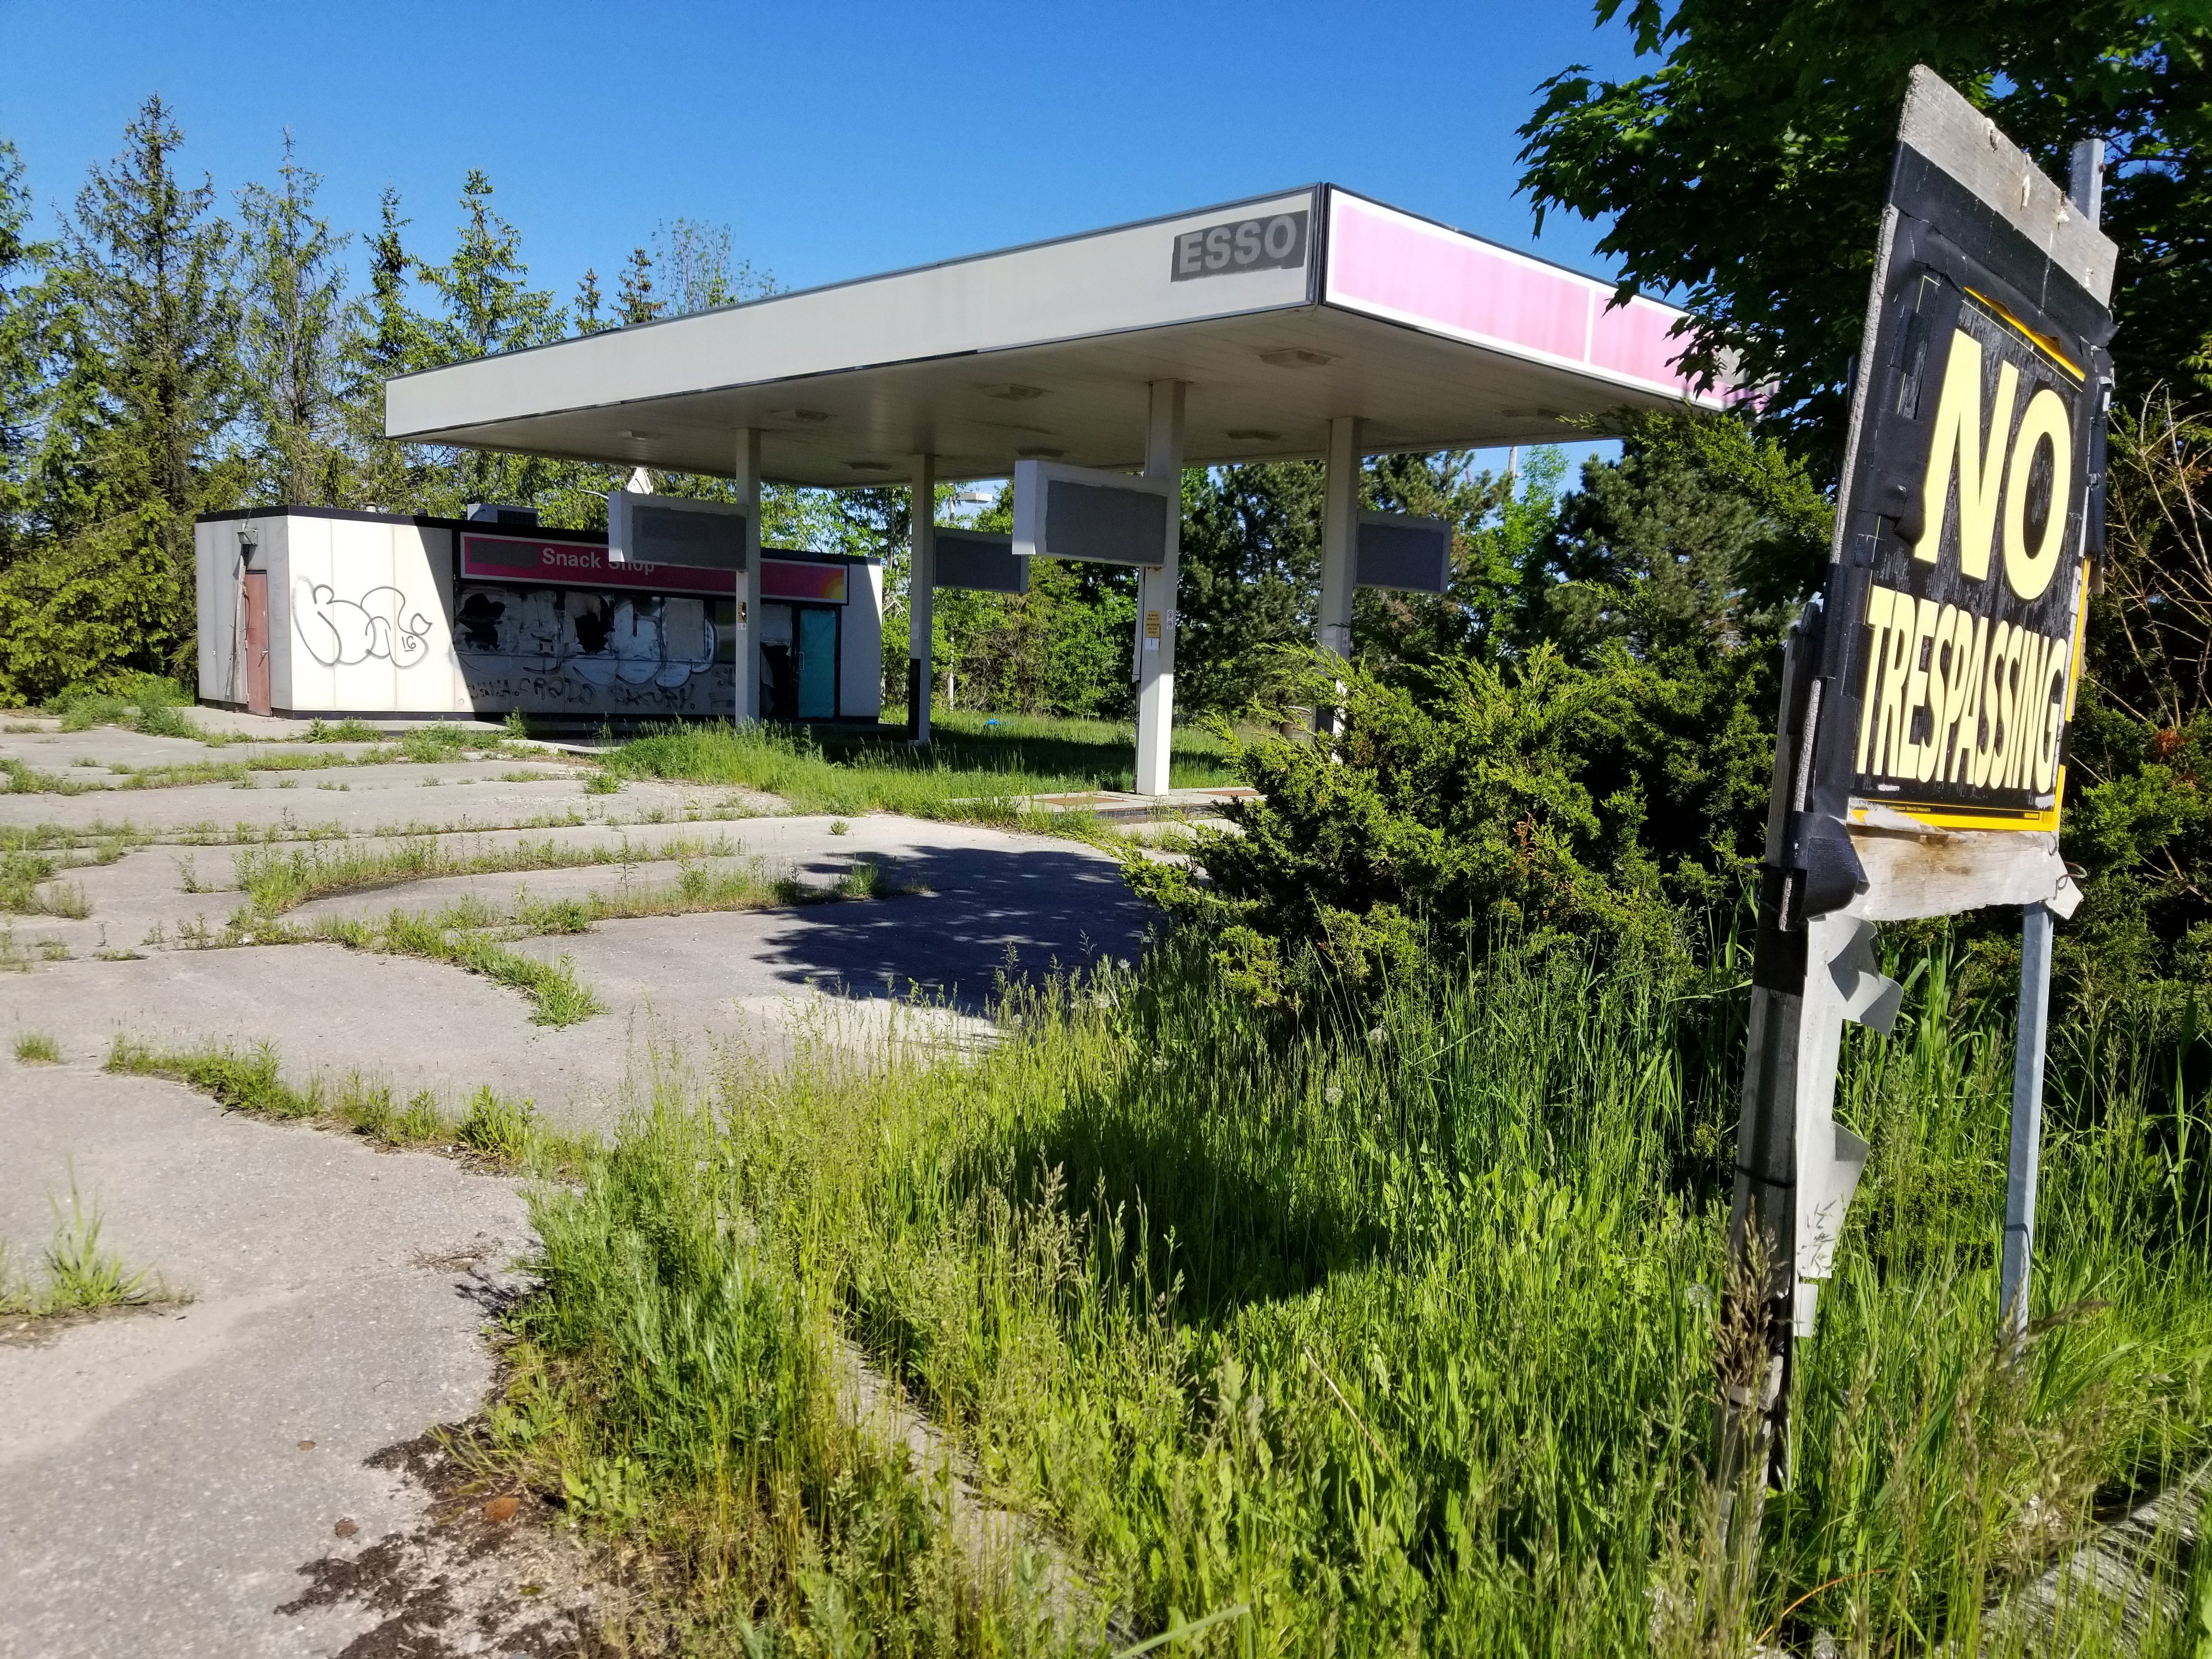 What S Going On Here Abandoned Mono Gas Station Prompts Property Standards Complaints